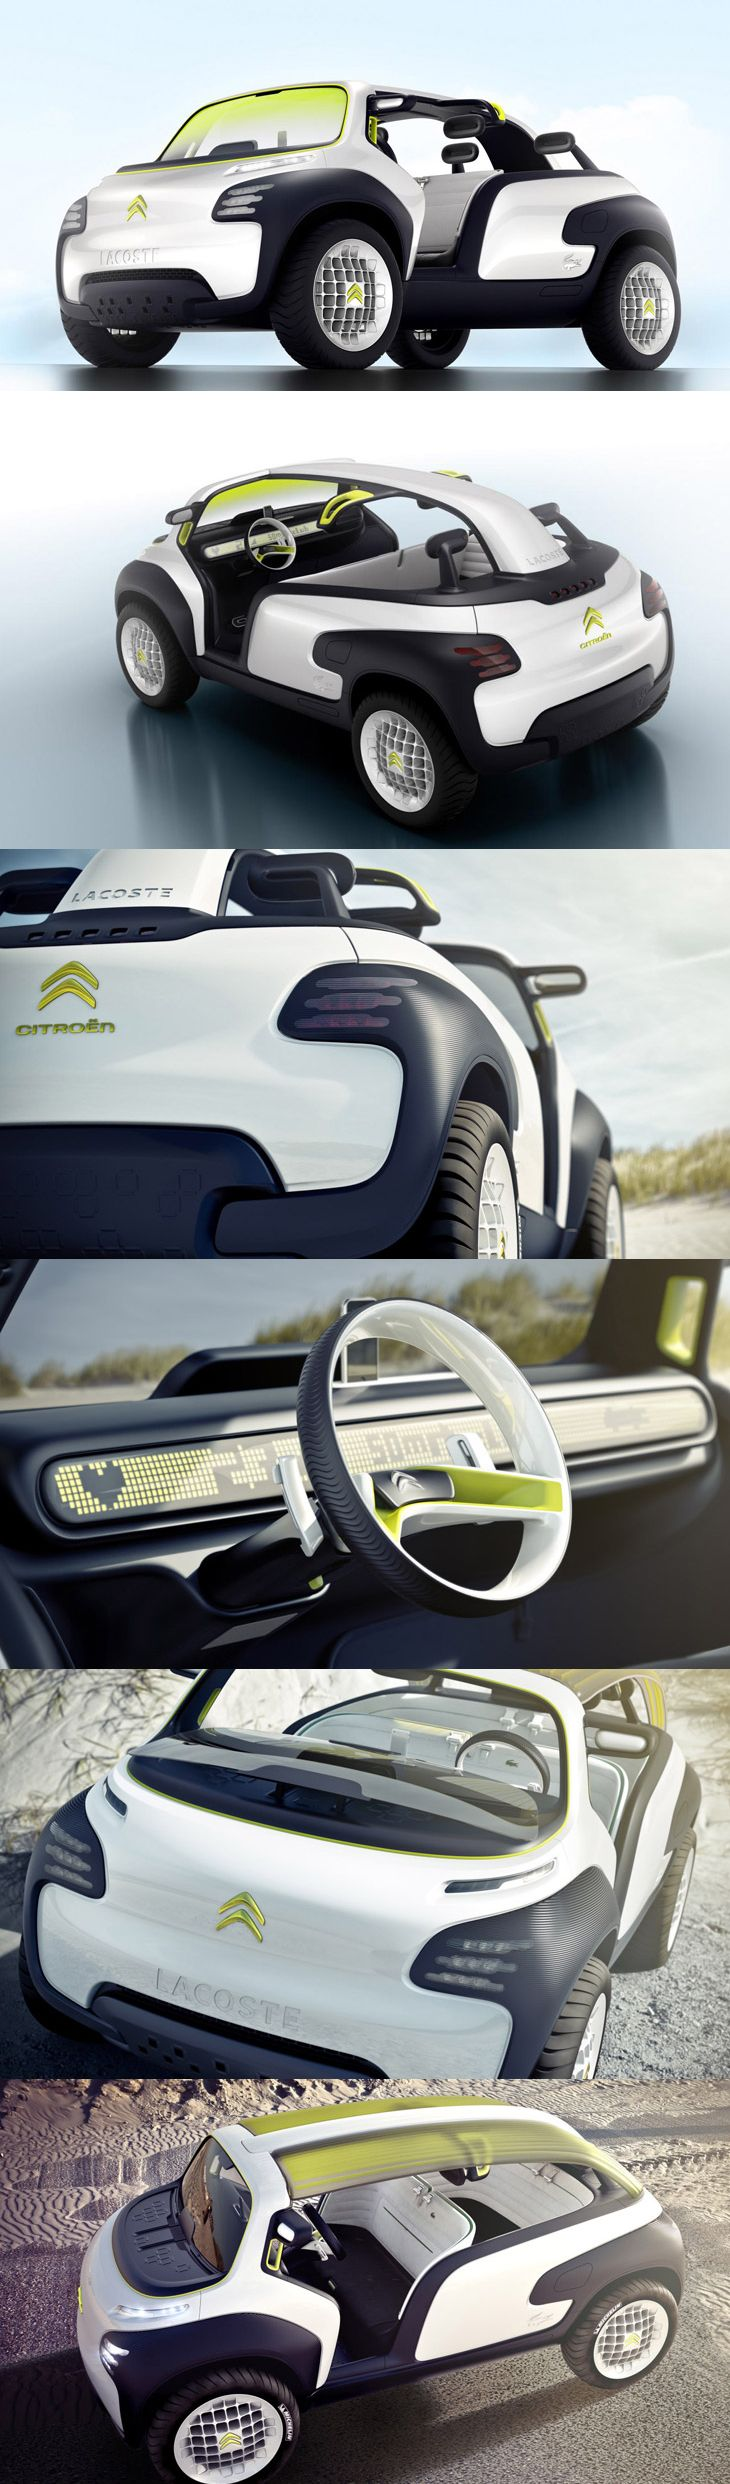 Citroën + Lacoste = funny future car! lol